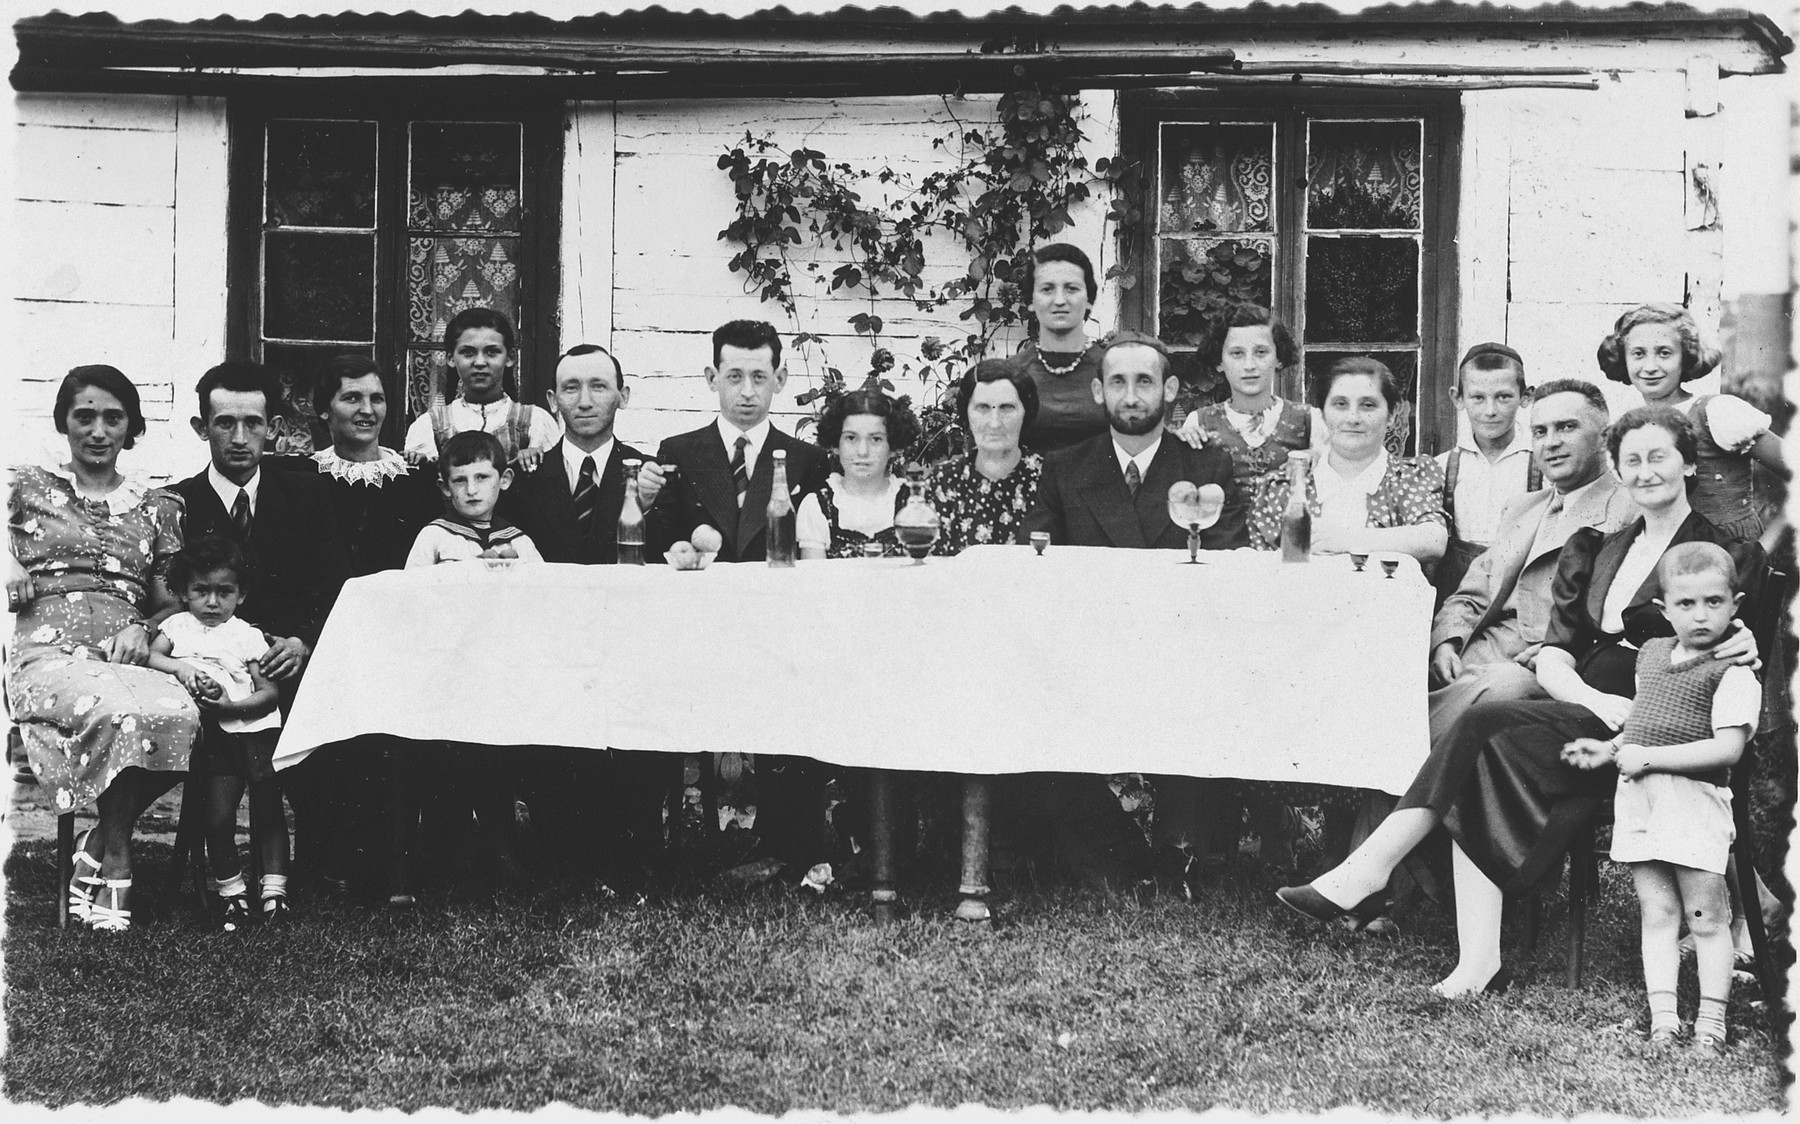 An extended Jewish family gathers around an outdoor table in prewar Zelow.